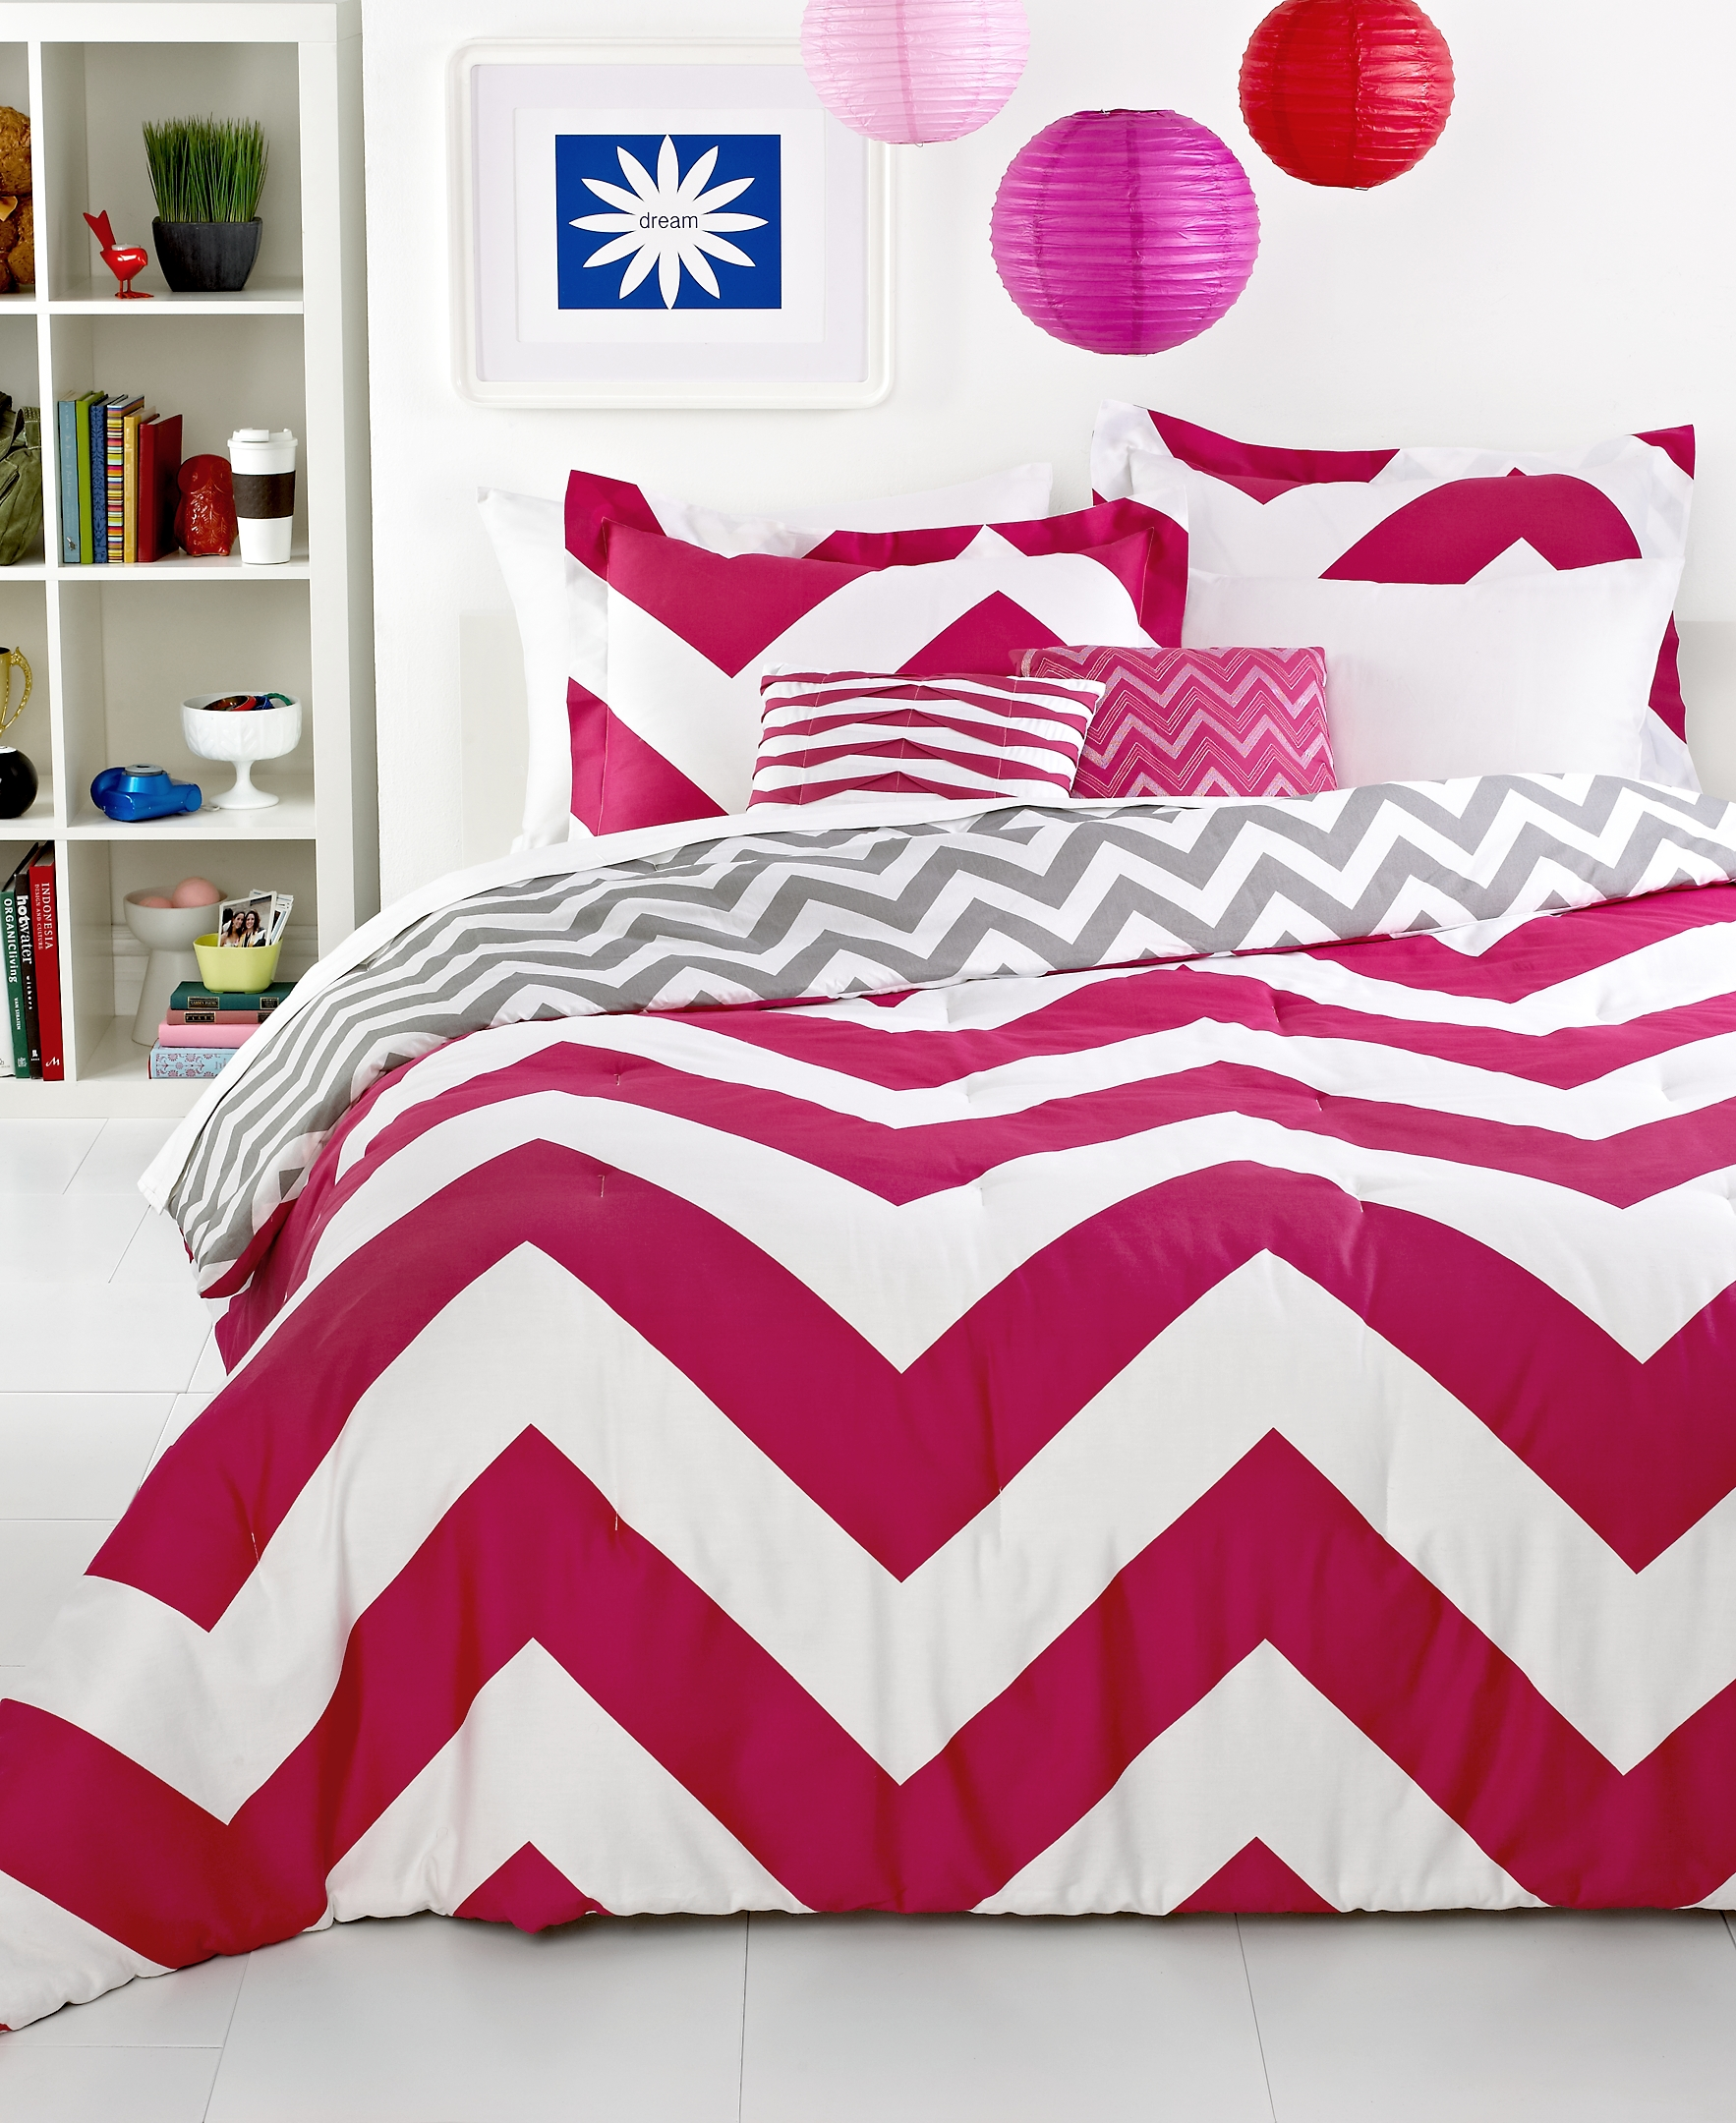 Awesome full comforter sets Bed queen size and king bedsize also pillows and cushion combined with headboards and curtains